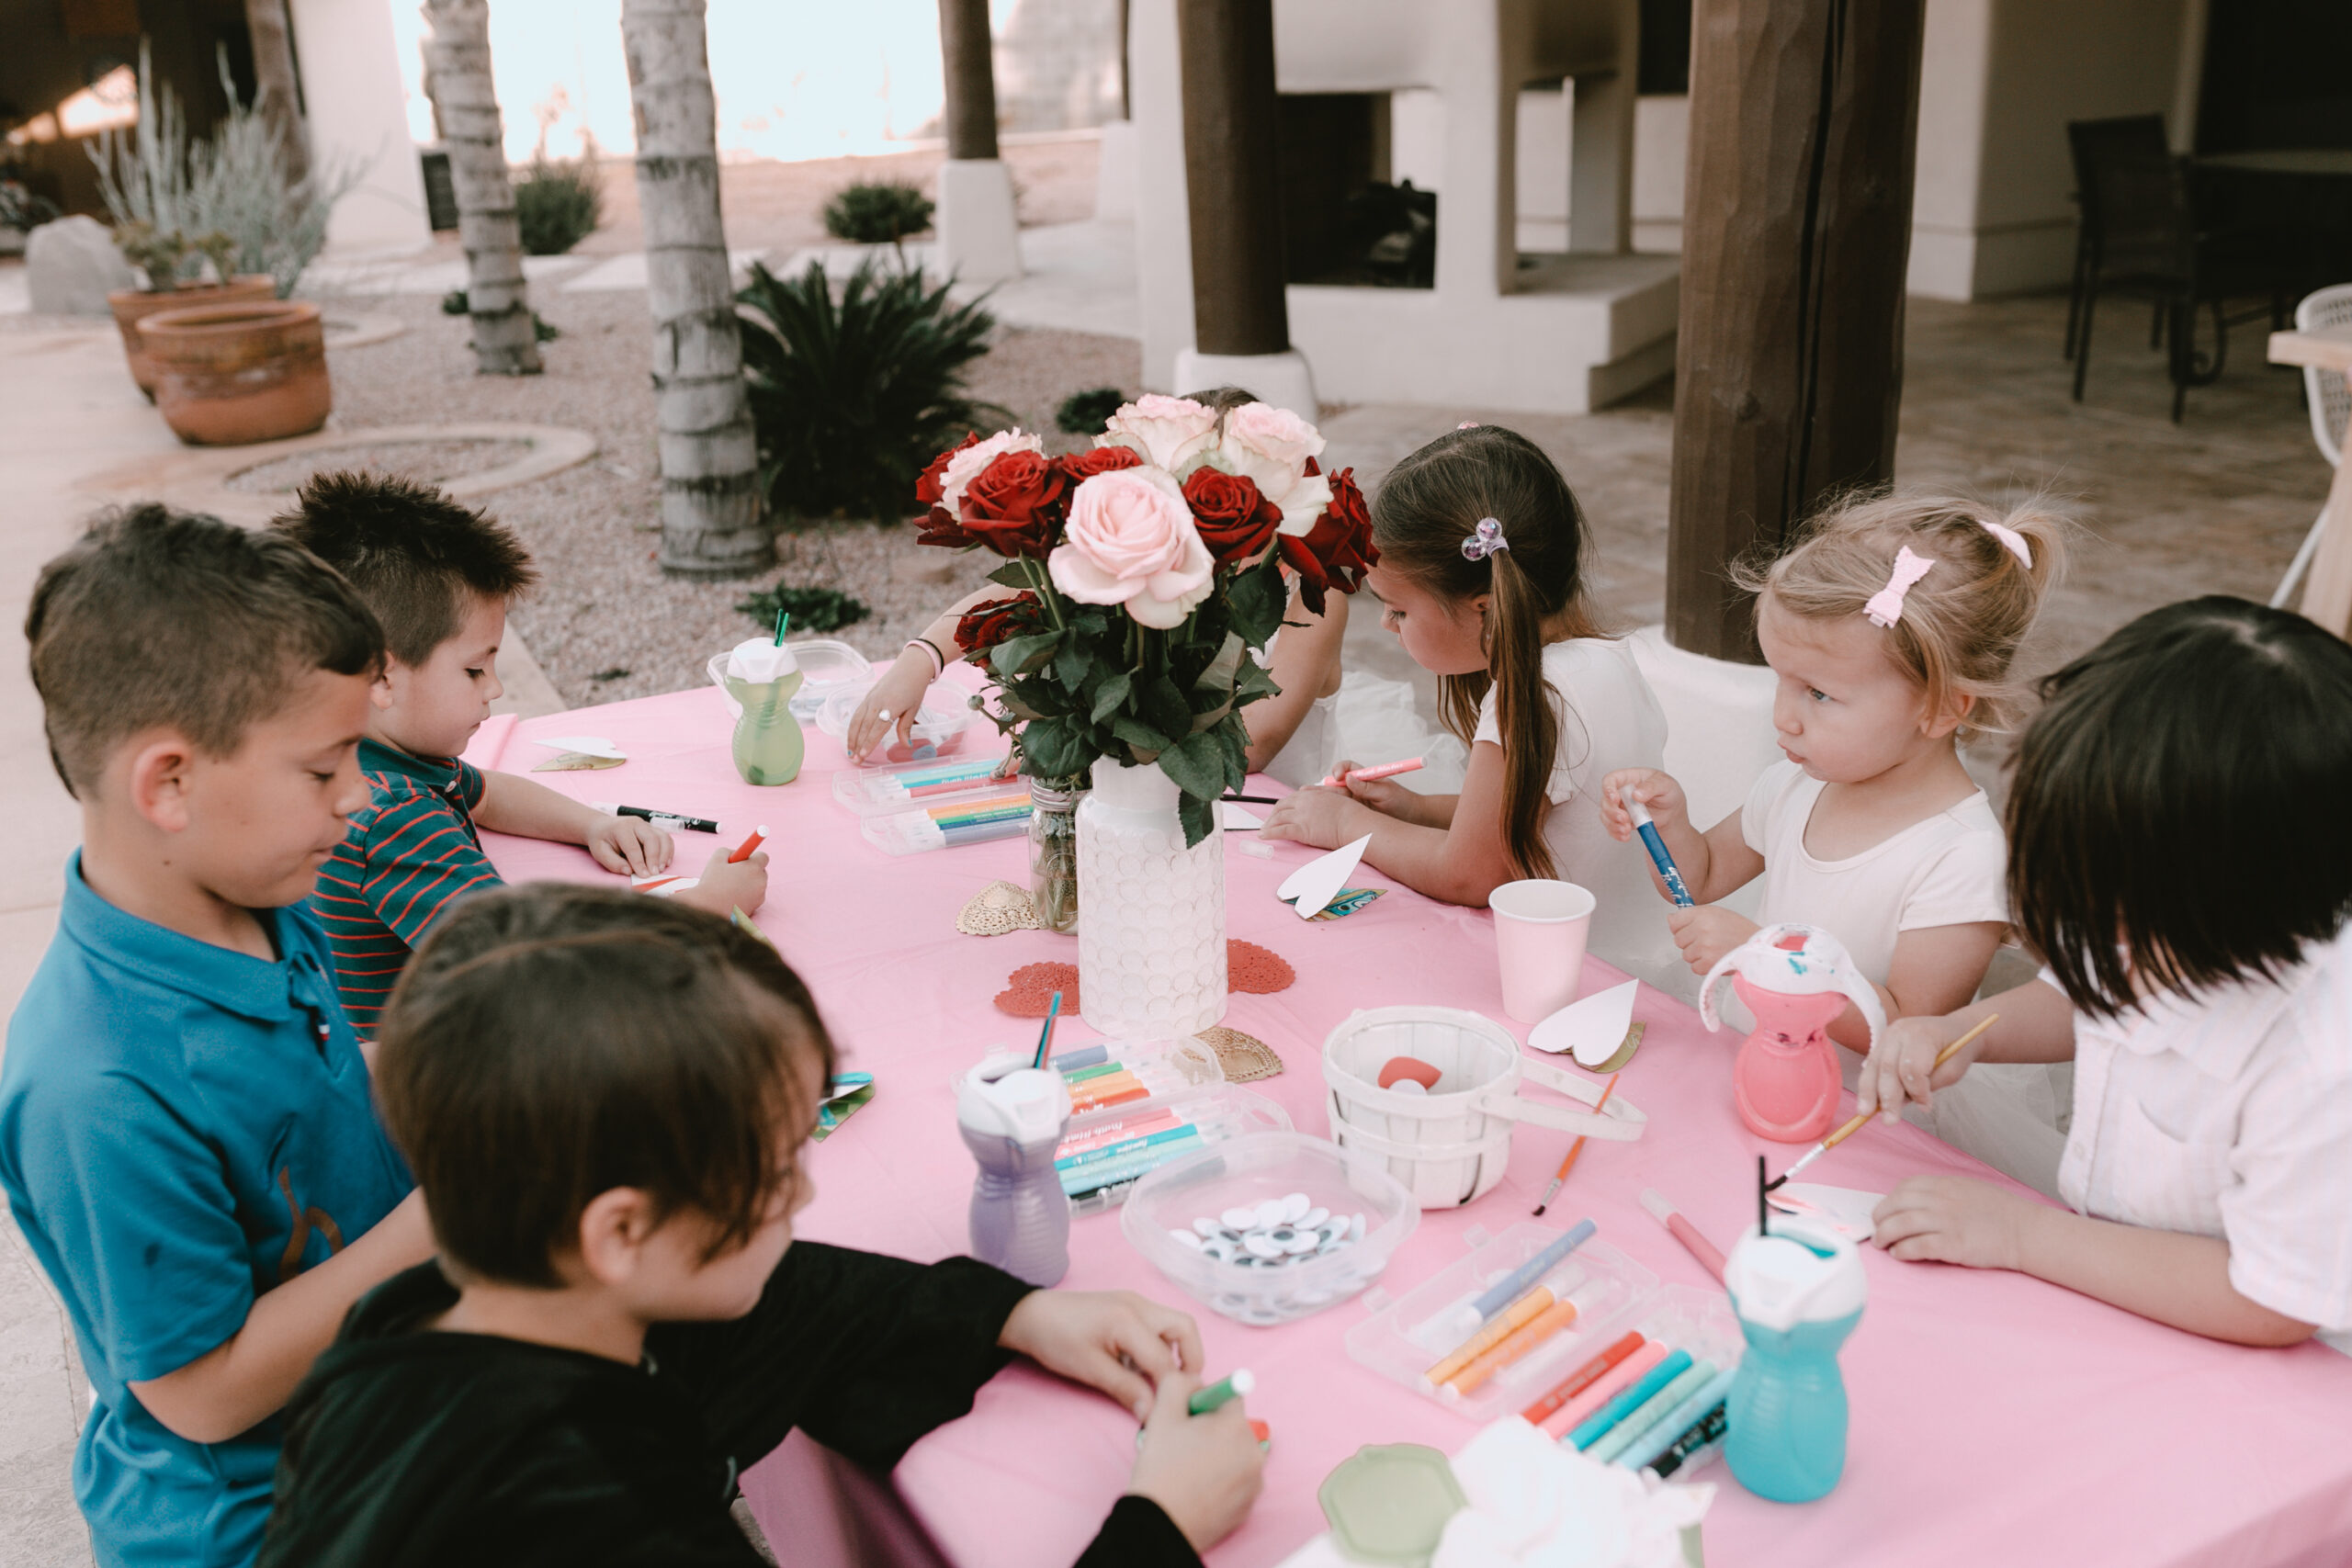 crafts for all ages at our valentine's day playdate. #thelovedesignedlife #loveday #valentinescraftparty